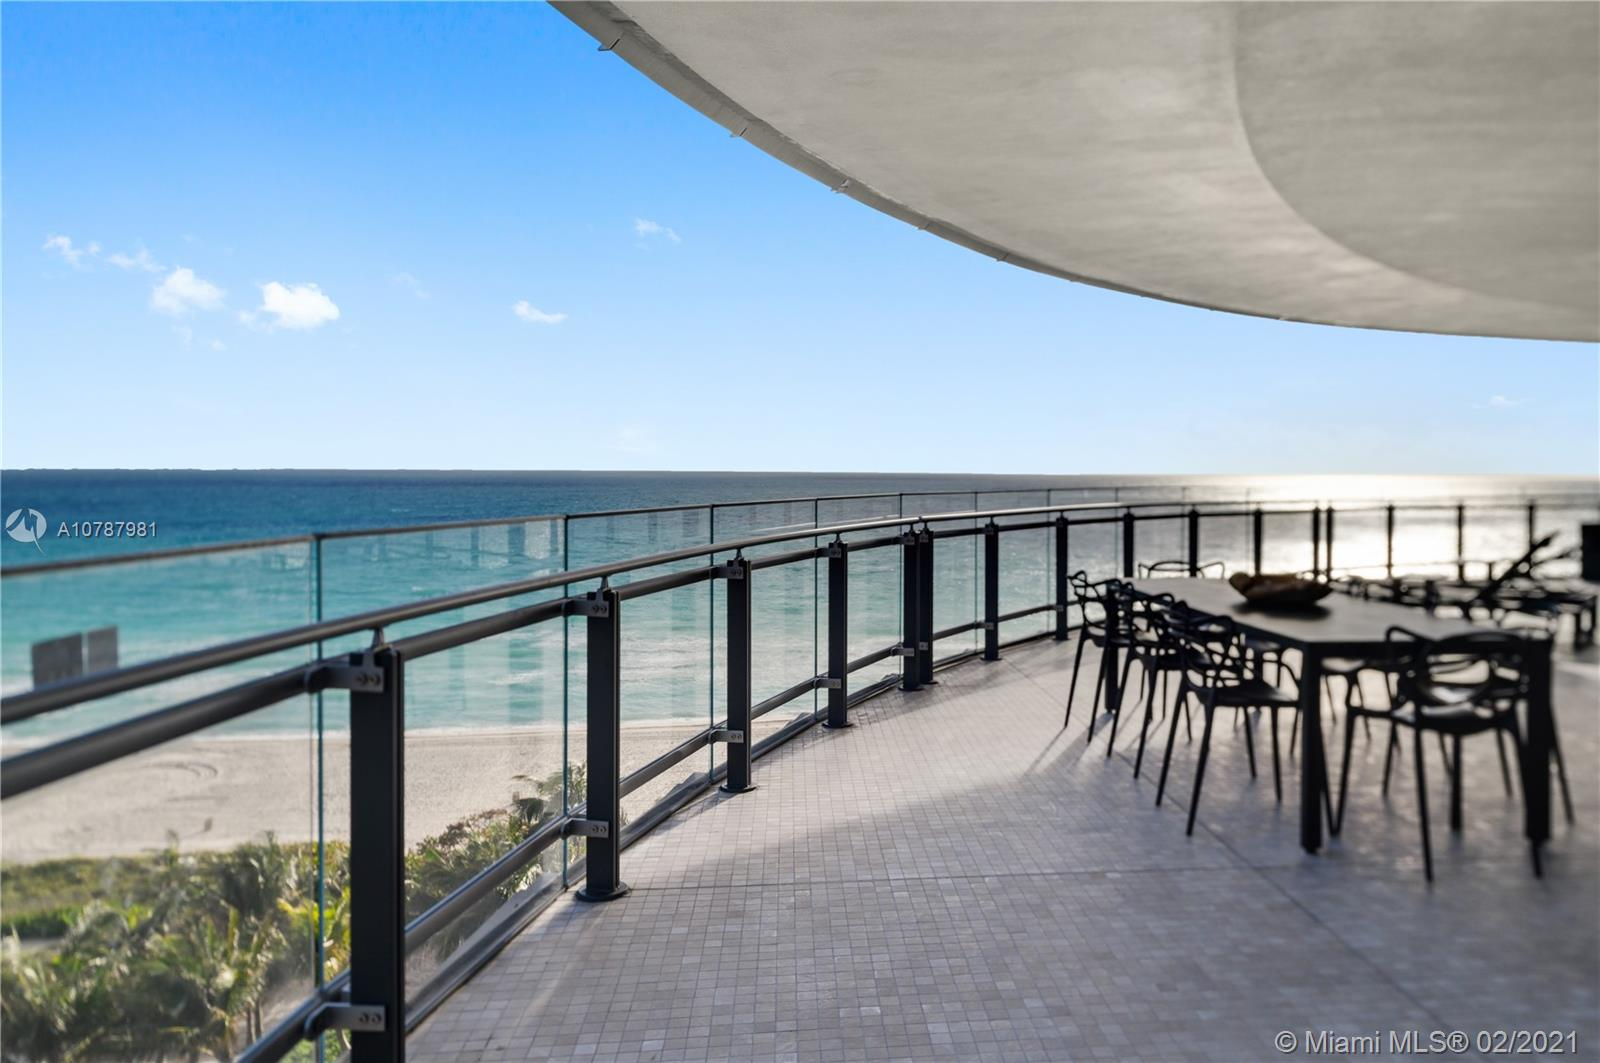 """Just completed,18 story building with just 70 luxurious residences,Eighty Seven Park designed by Pritzker Prize-winning architect Renzo Piano,features stunning ocean,city and park views.Enjoy the direct ocean views from this 3 bed,3.5 bath line 01 designed by Rena Dumas (RDAI):Wolf & subzero appliances,natural stone counter tops & back splashes,Zucchetti bathroom fixtures,vanities & accessories,floor to ceiling windows,10""""ceilings and a 1,715 sf wrap around terrace.Eighty Seven features both indoor & outdoor amenities which include:Soul Center Spa,Enoteca,Library,Apple (SMART) Center,Private Garden,Fugo Bar,Botanical Exhibition,Pool & Cabanas.Located at the gateway to Miami Beach,close to Bal Harbour shopping,Eighty Seven Park provides unobstructed views of the park and ocean.Easy to show."""